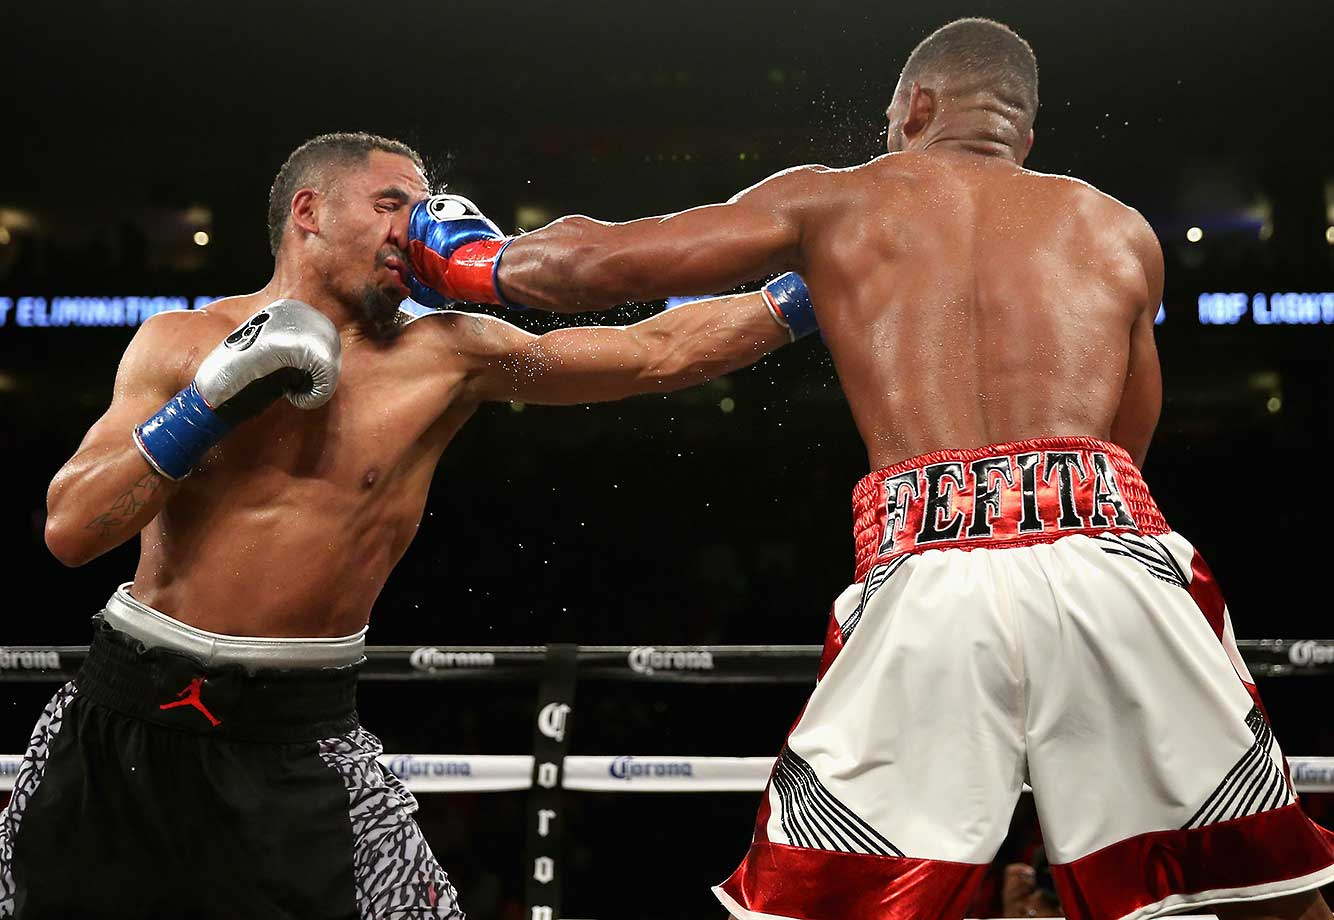 Andre Ward takes a punch against Sullivan Barrera in their IBF Light Heavyweight bout in Oakland.